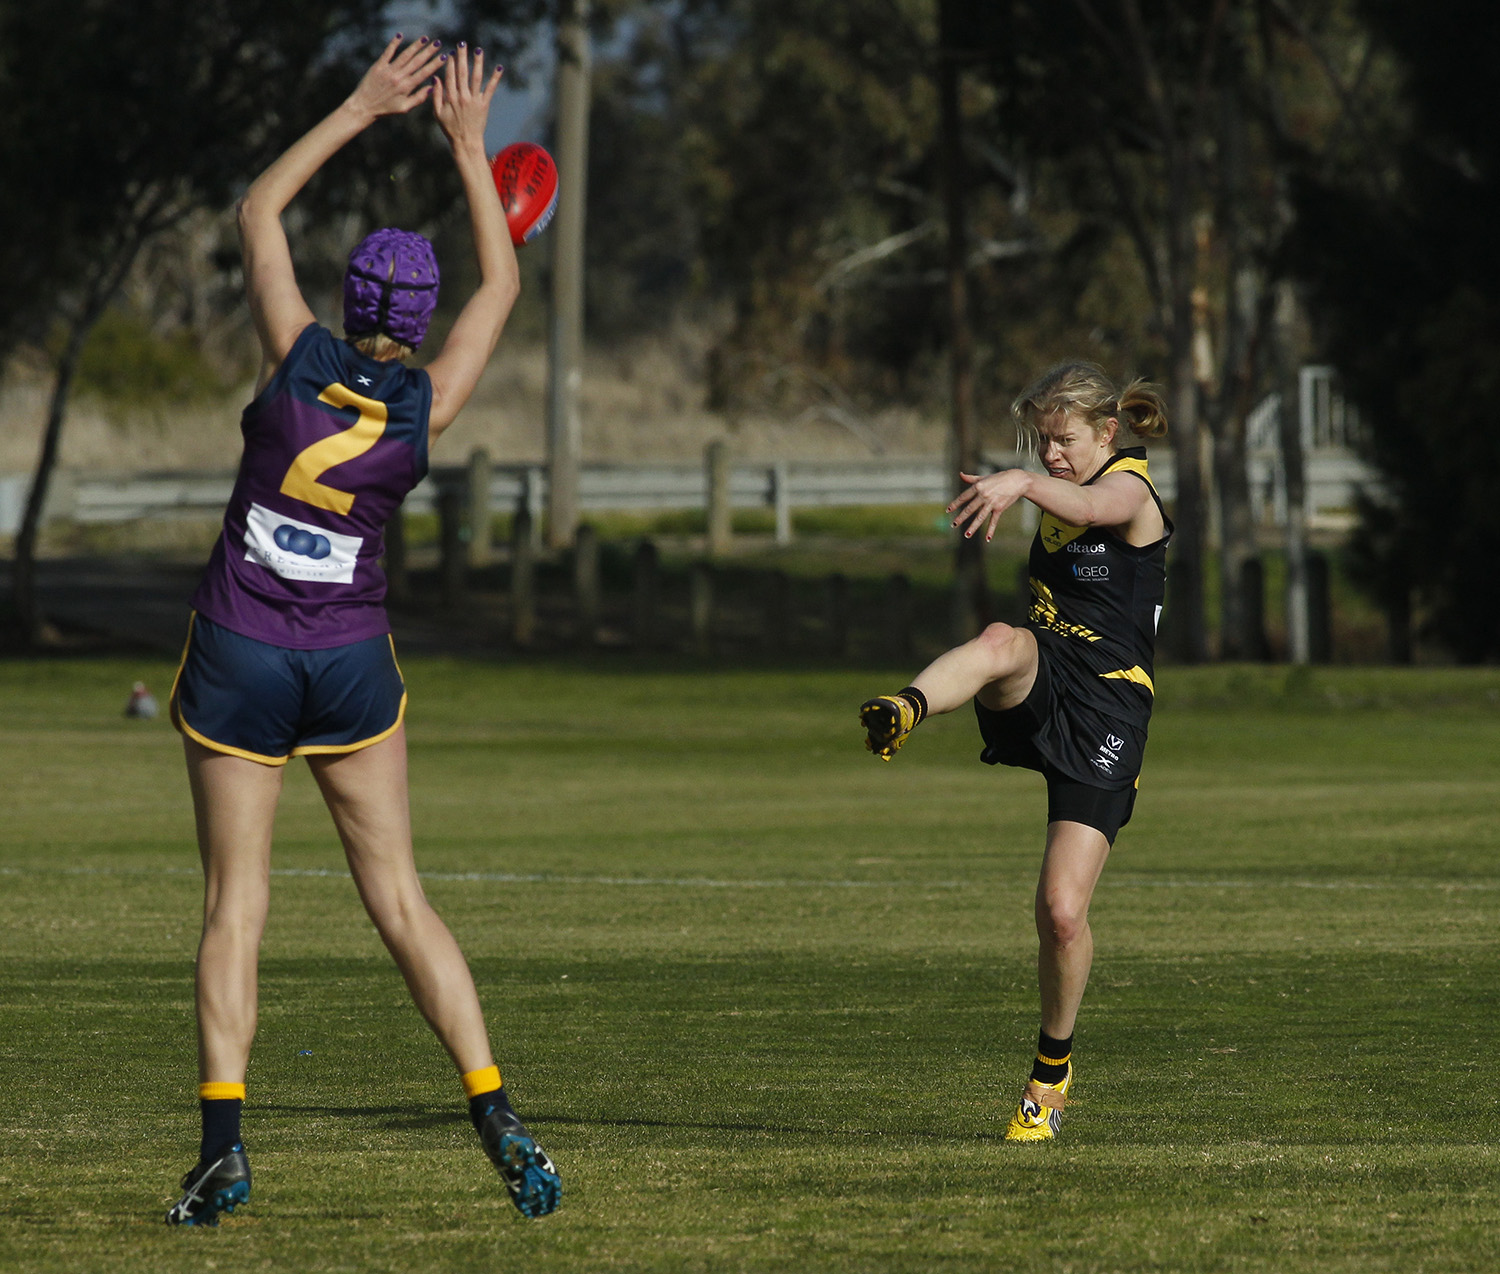 Ashley's speed and skills added to the Waverley Warriors armoury during the team's first season.